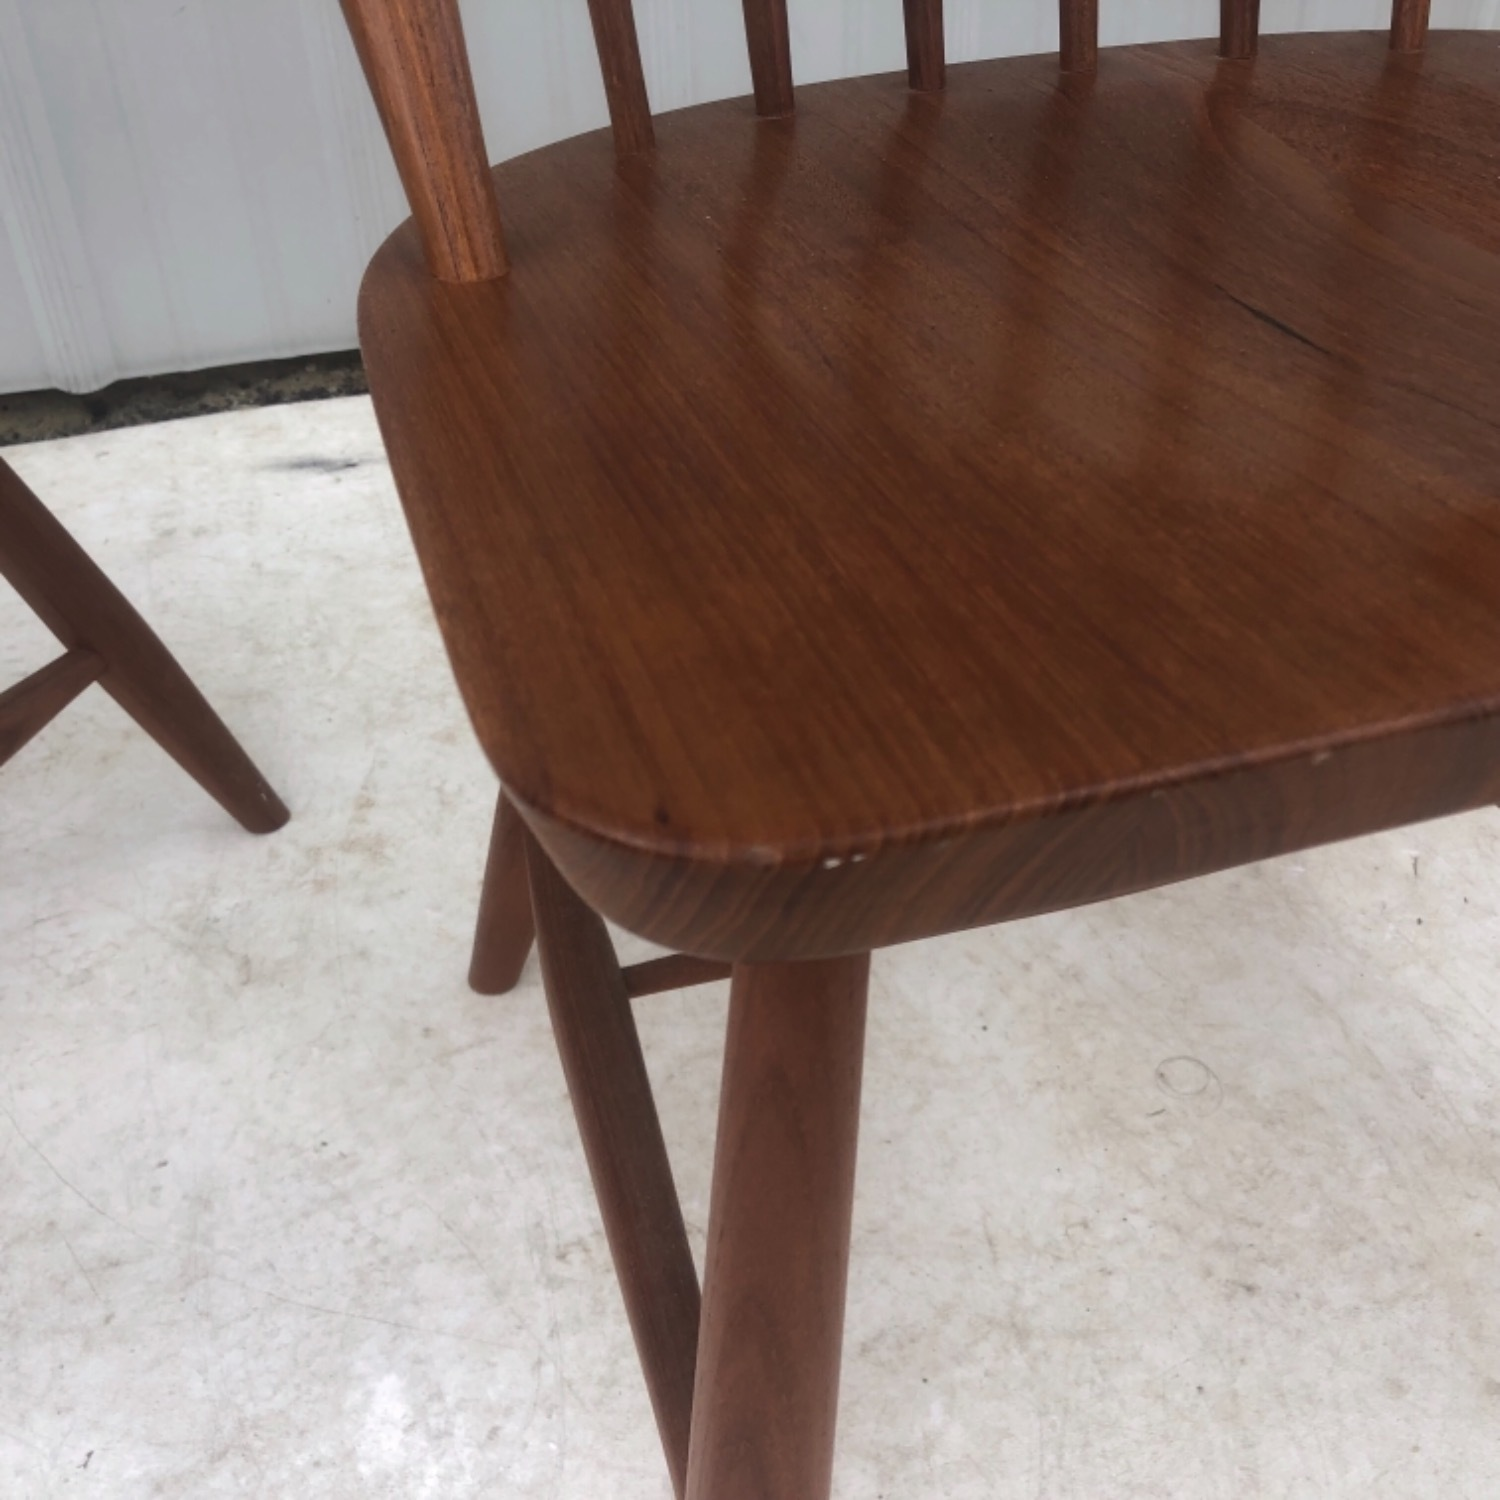 Vintage Modern Dining Set w/ Six Chairs - image-17